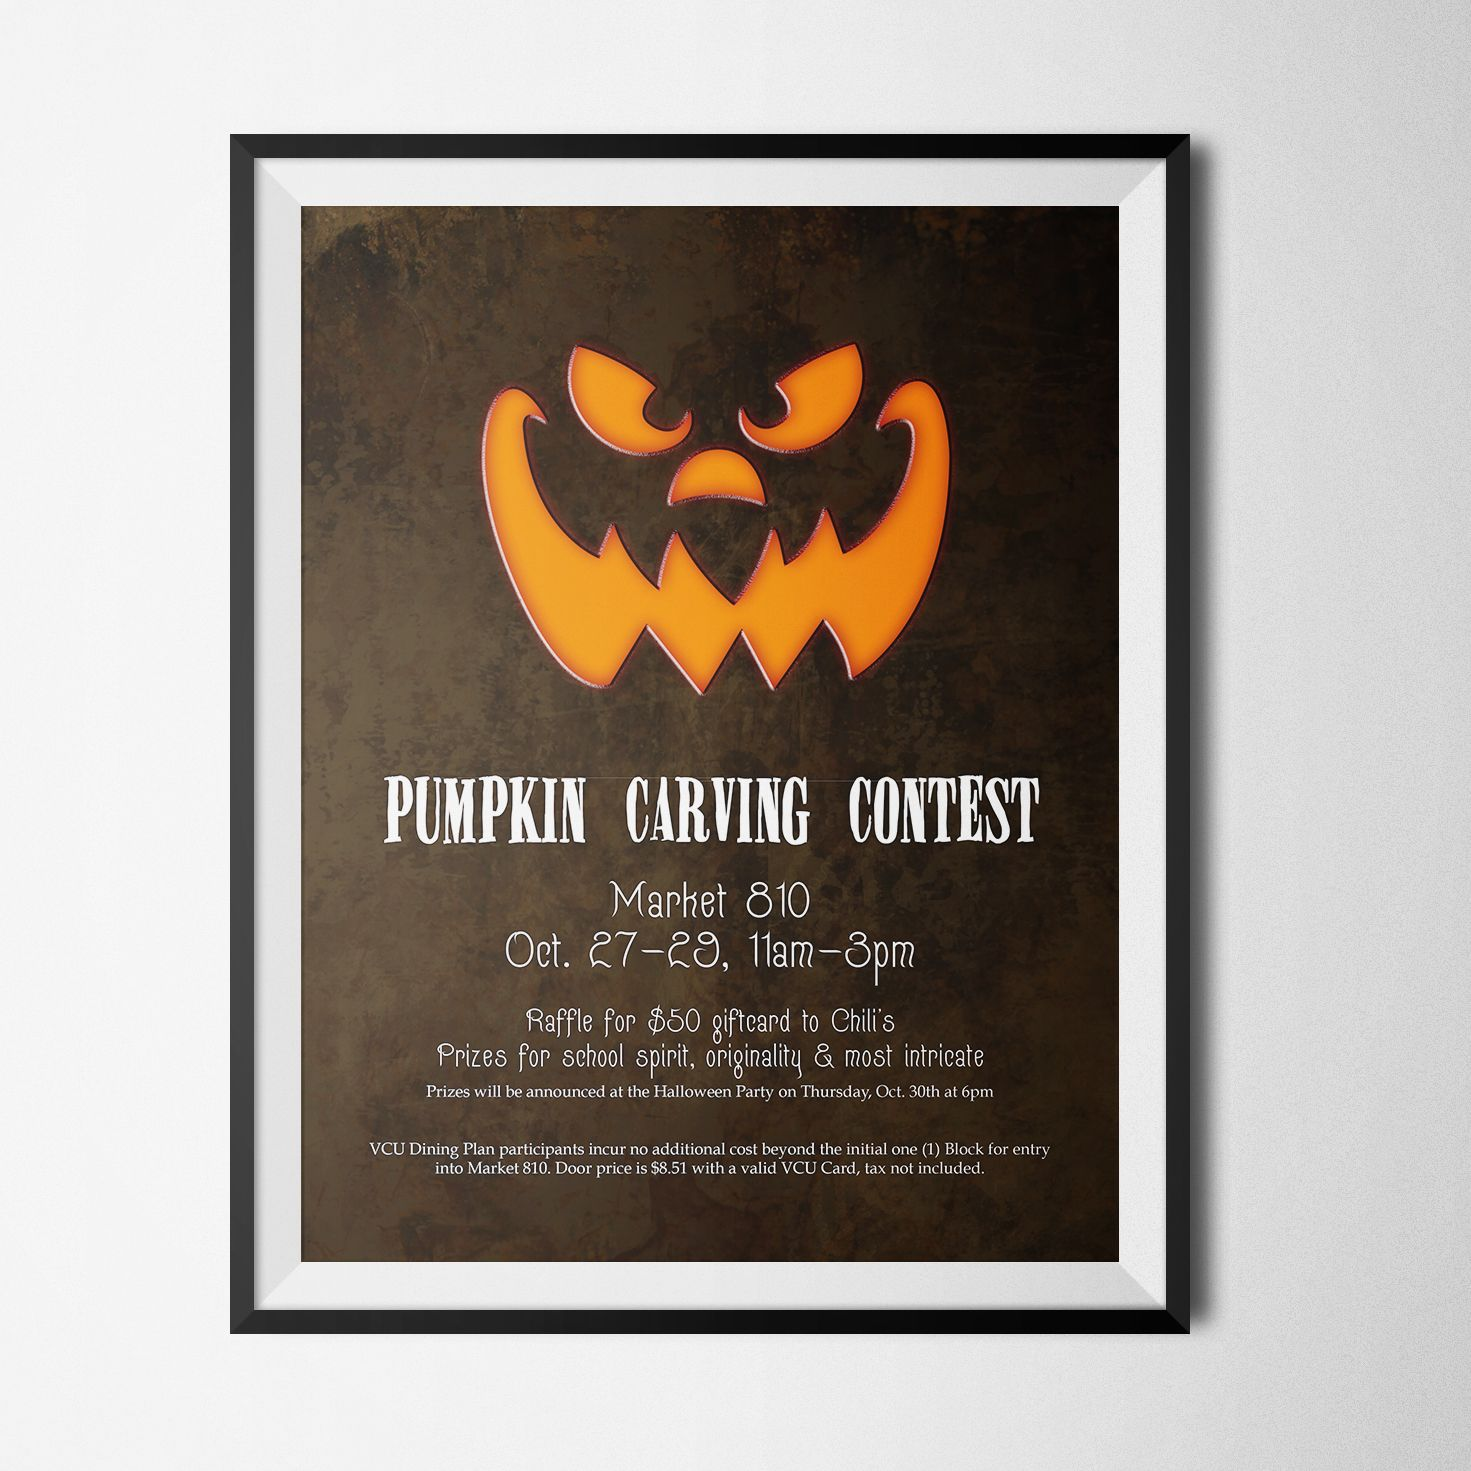 Halloween Poster - Pumpkin Carving Contest - PosterDesign | My ...